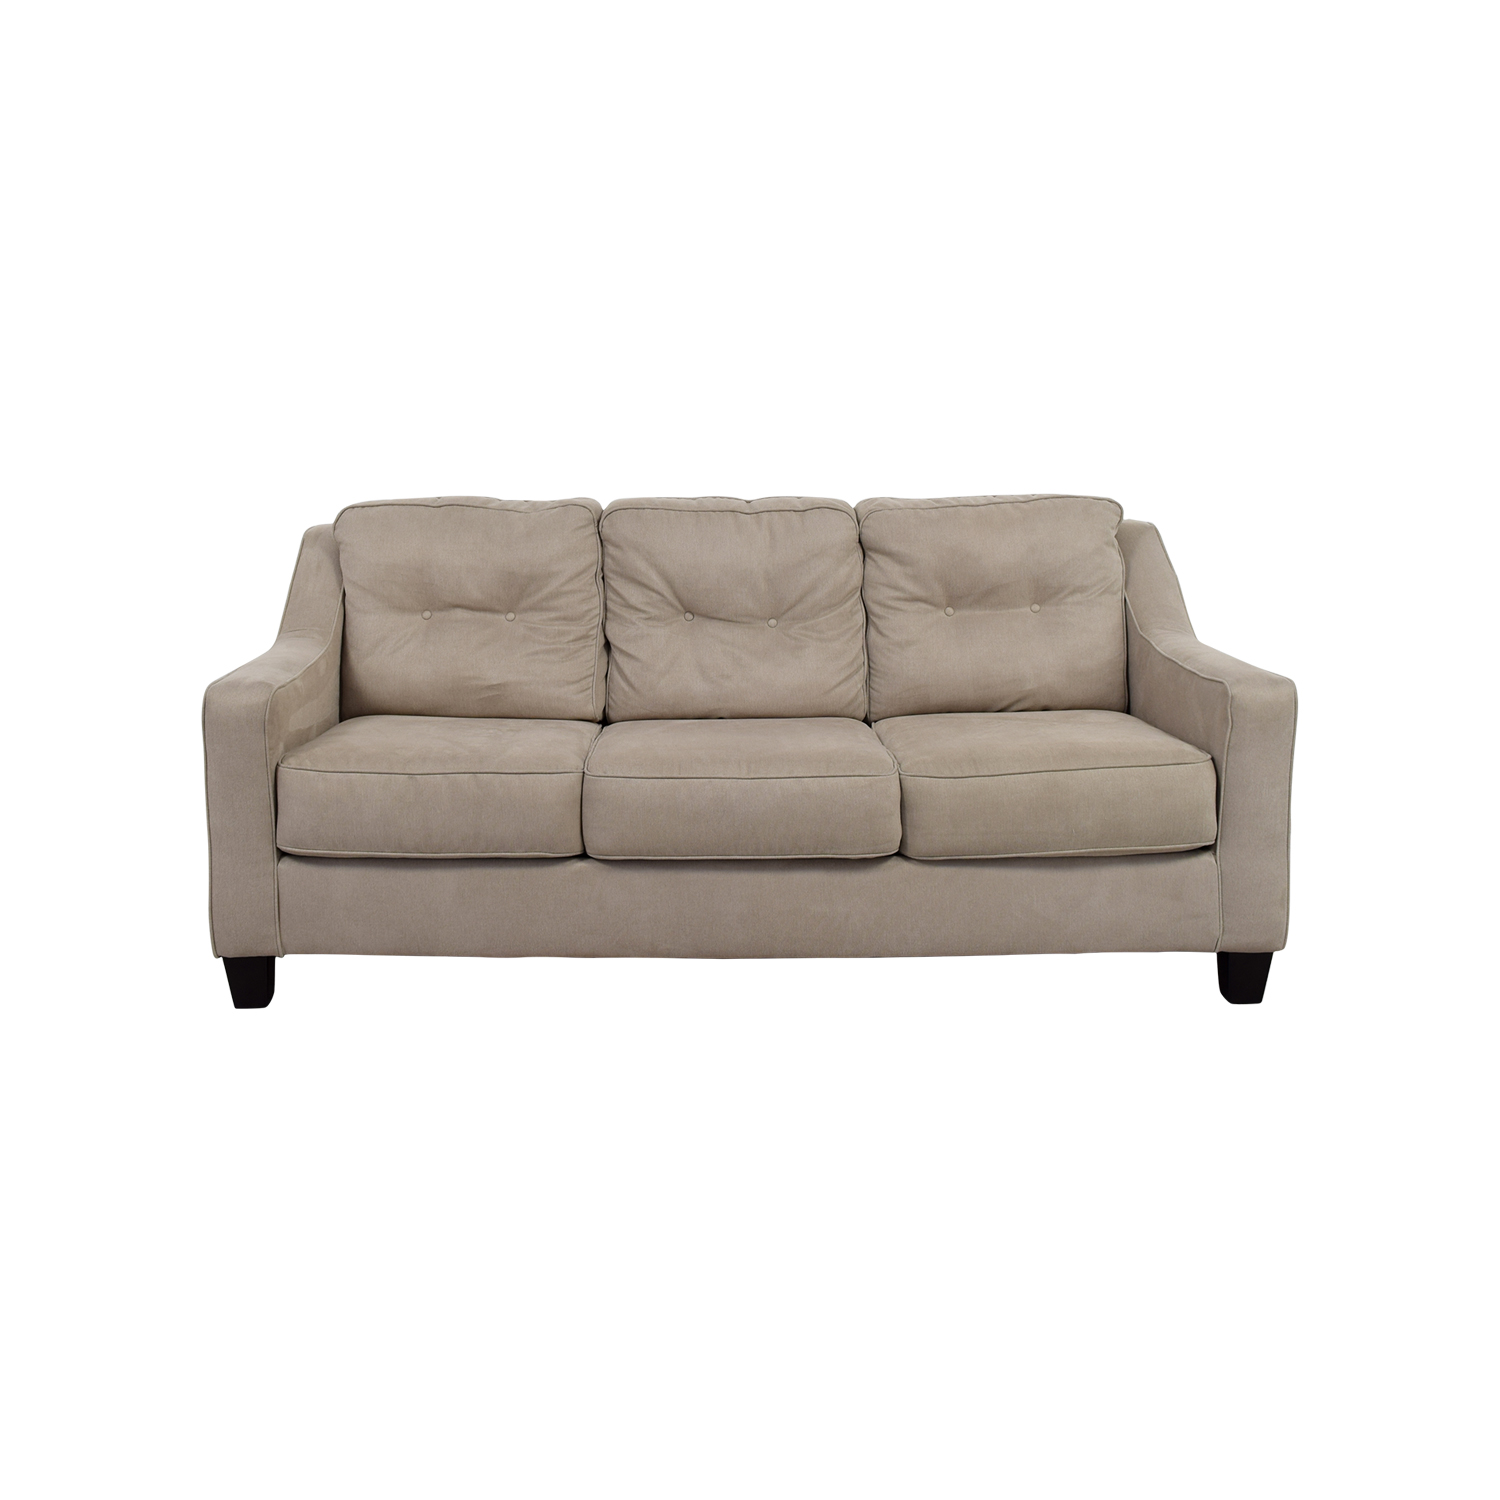 Ashley Furniture Ashley Furniture Beige Three-Cushion Couch coupon